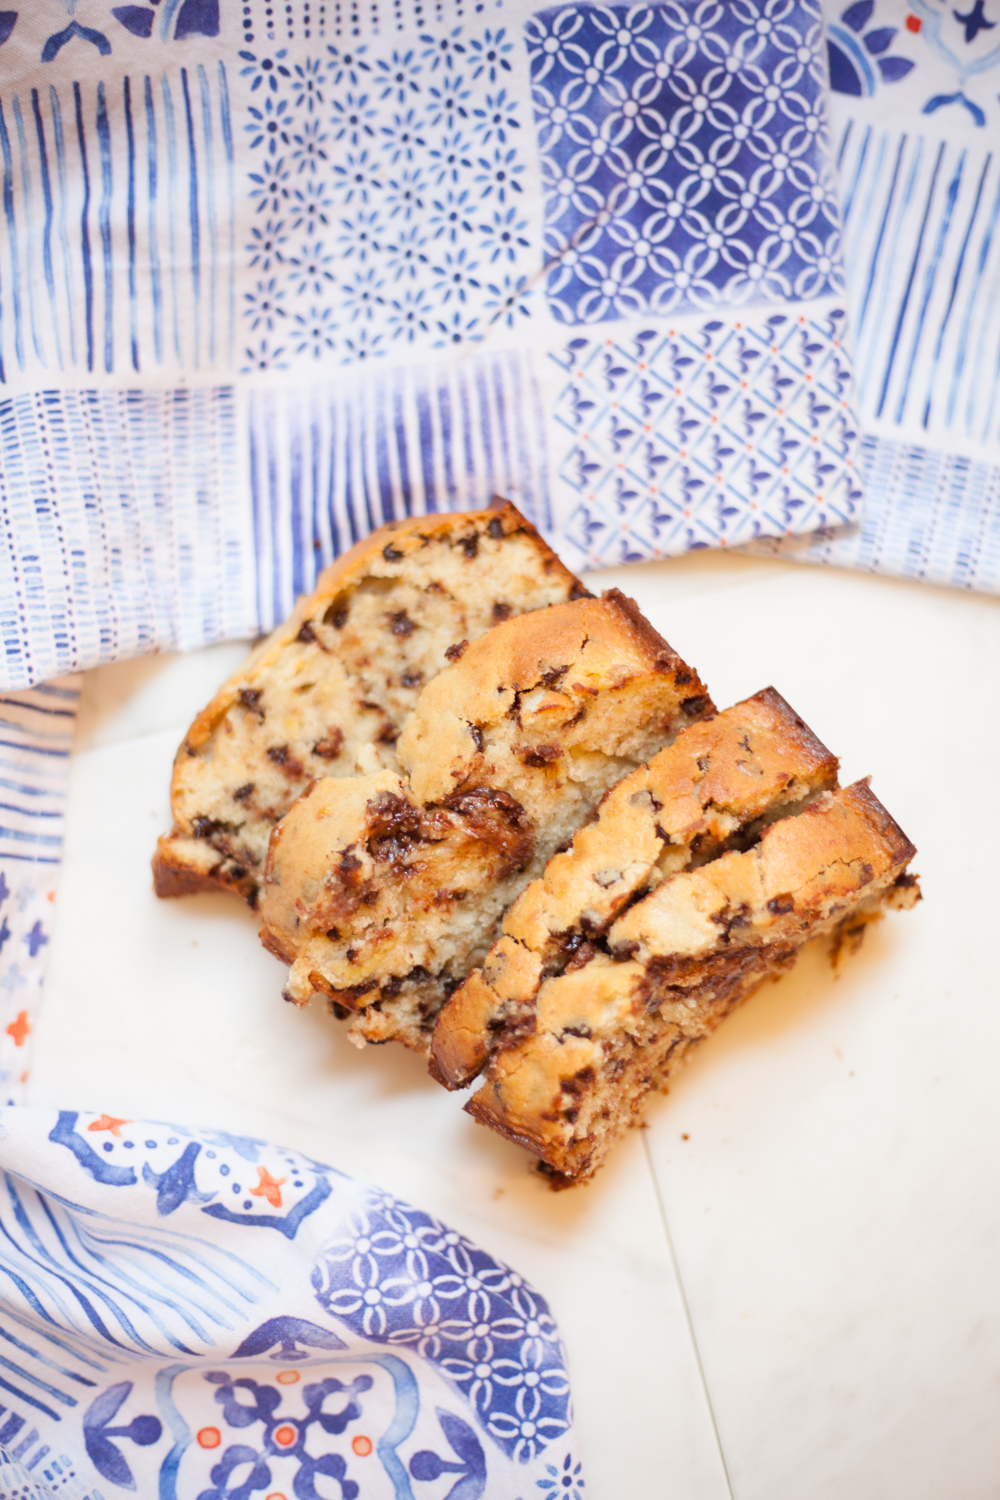 Best Banana Chocolate Chip Bread Recipe